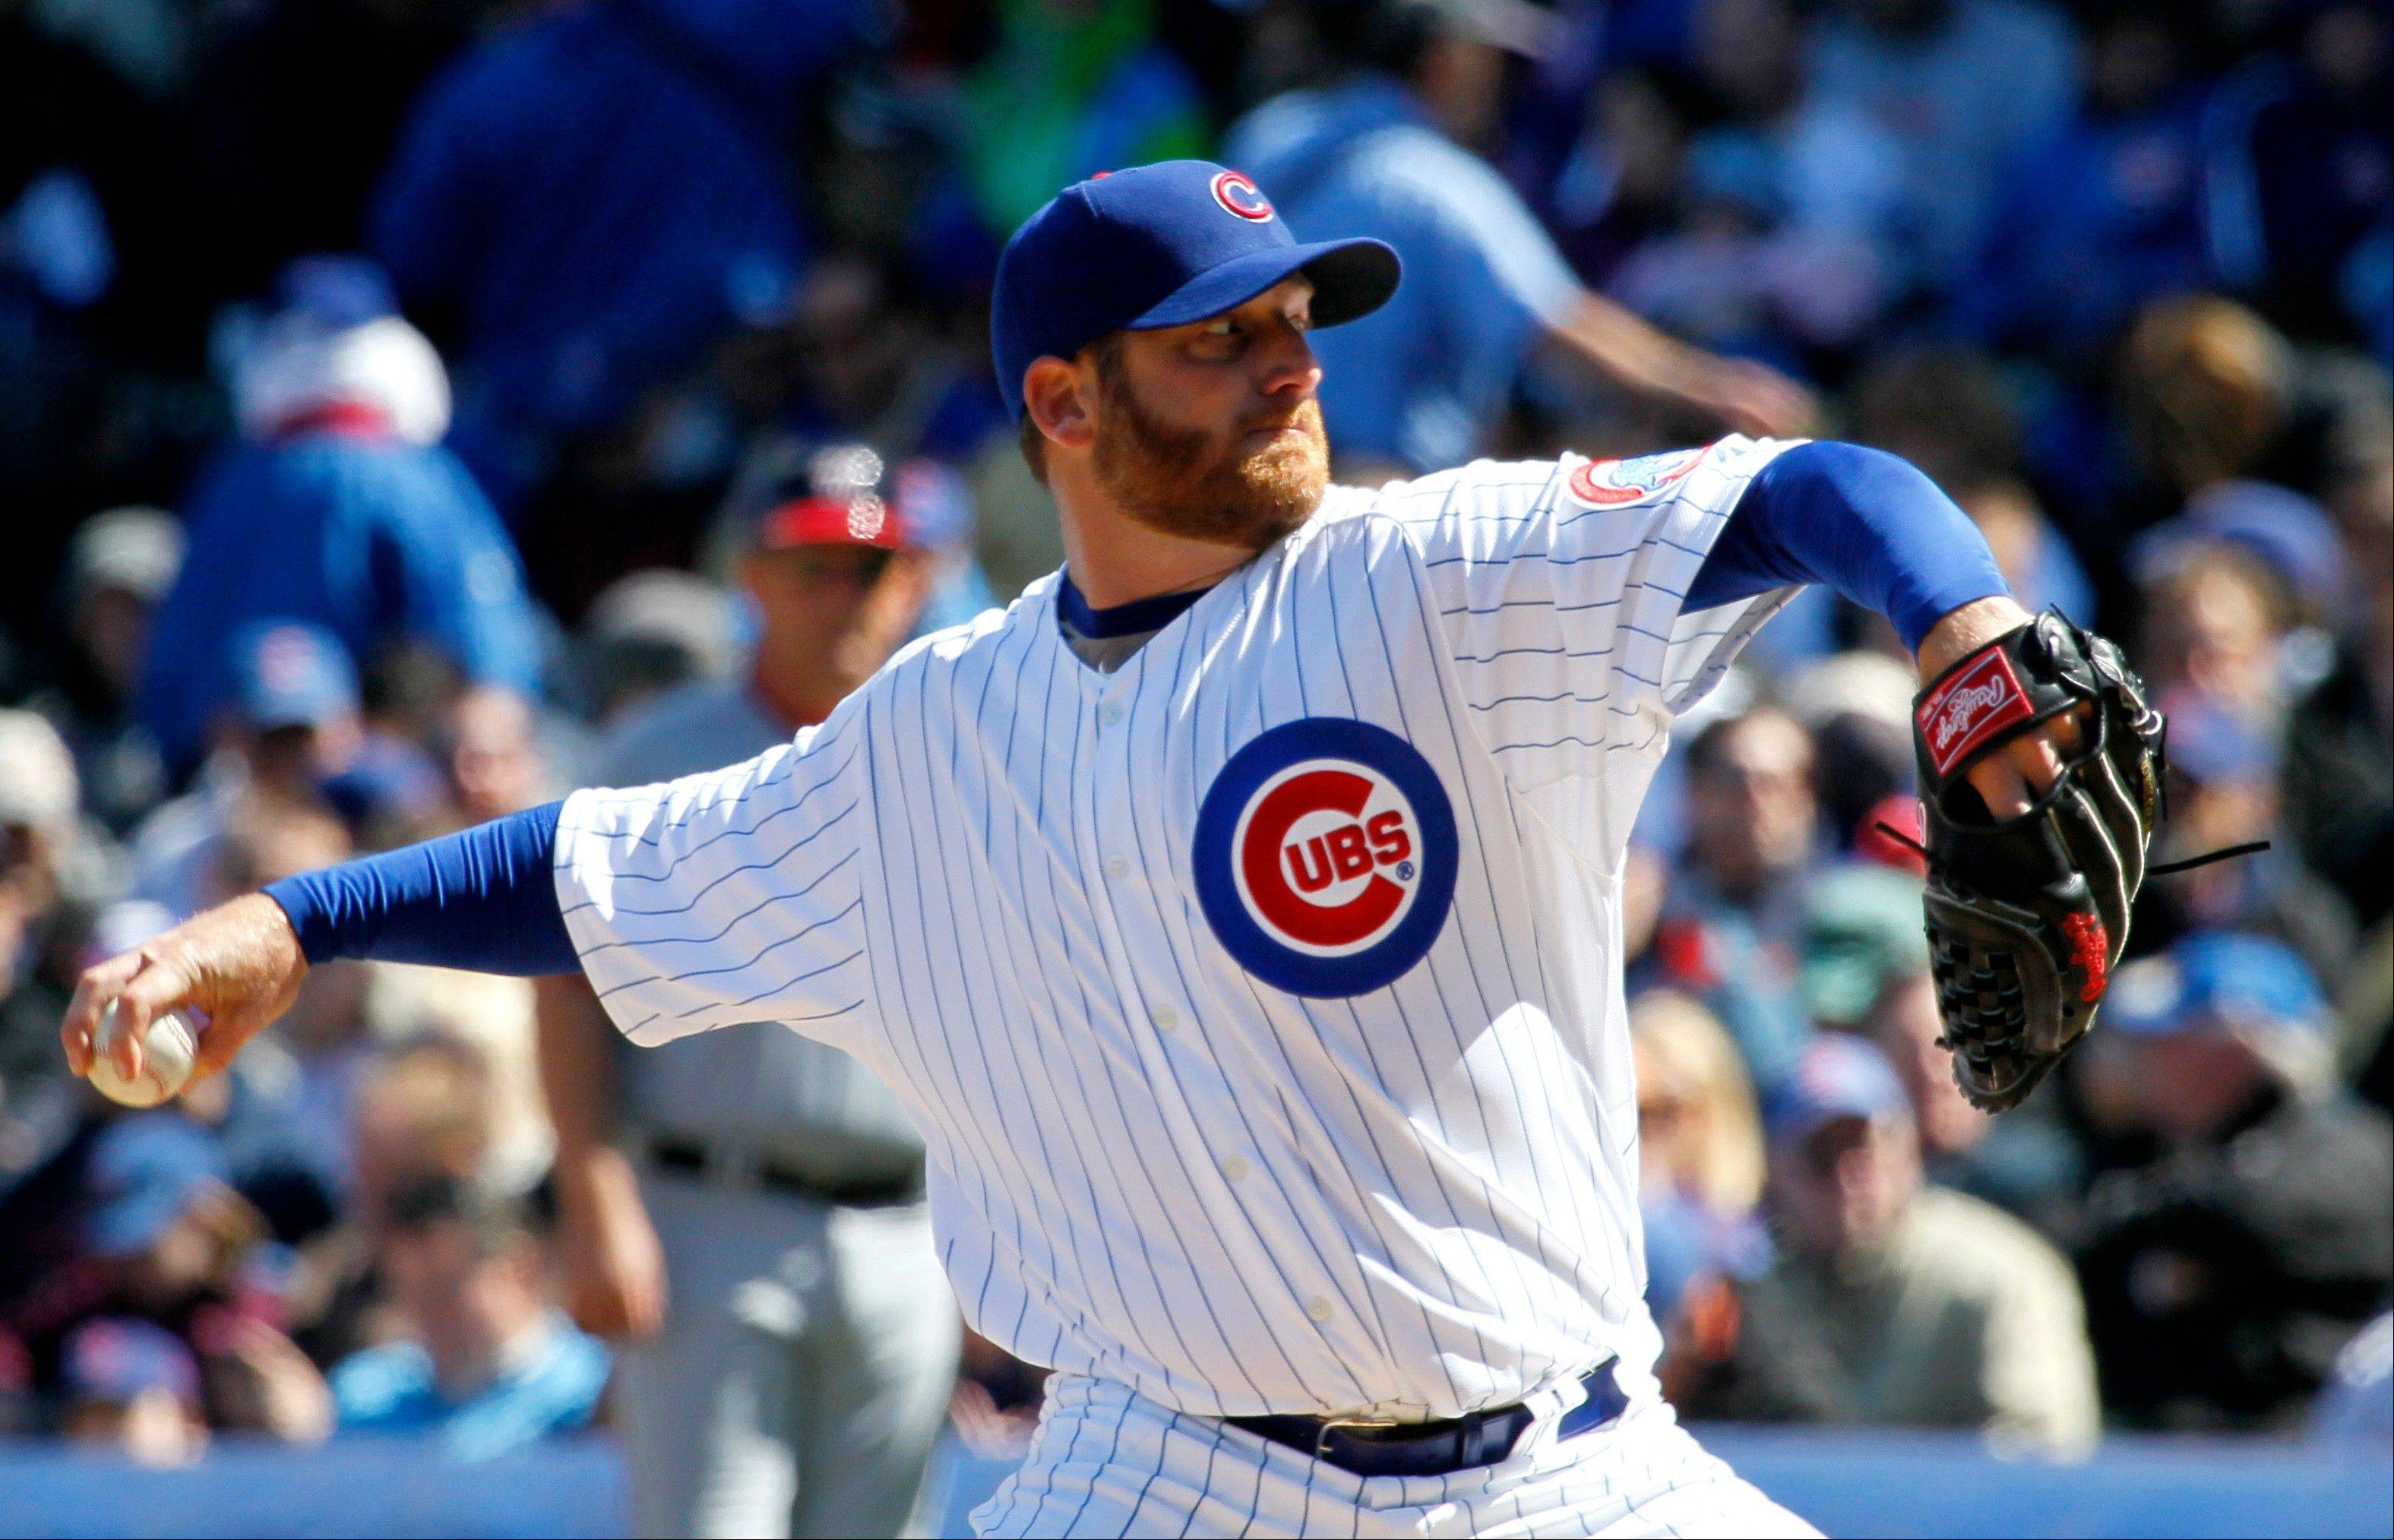 Chicago Cubs starting pitcher Ryan Dempster delivers during the second inning of an opening day baseball game against the Washington Nationals, Thursday, April 5, 2012, in Chicago.